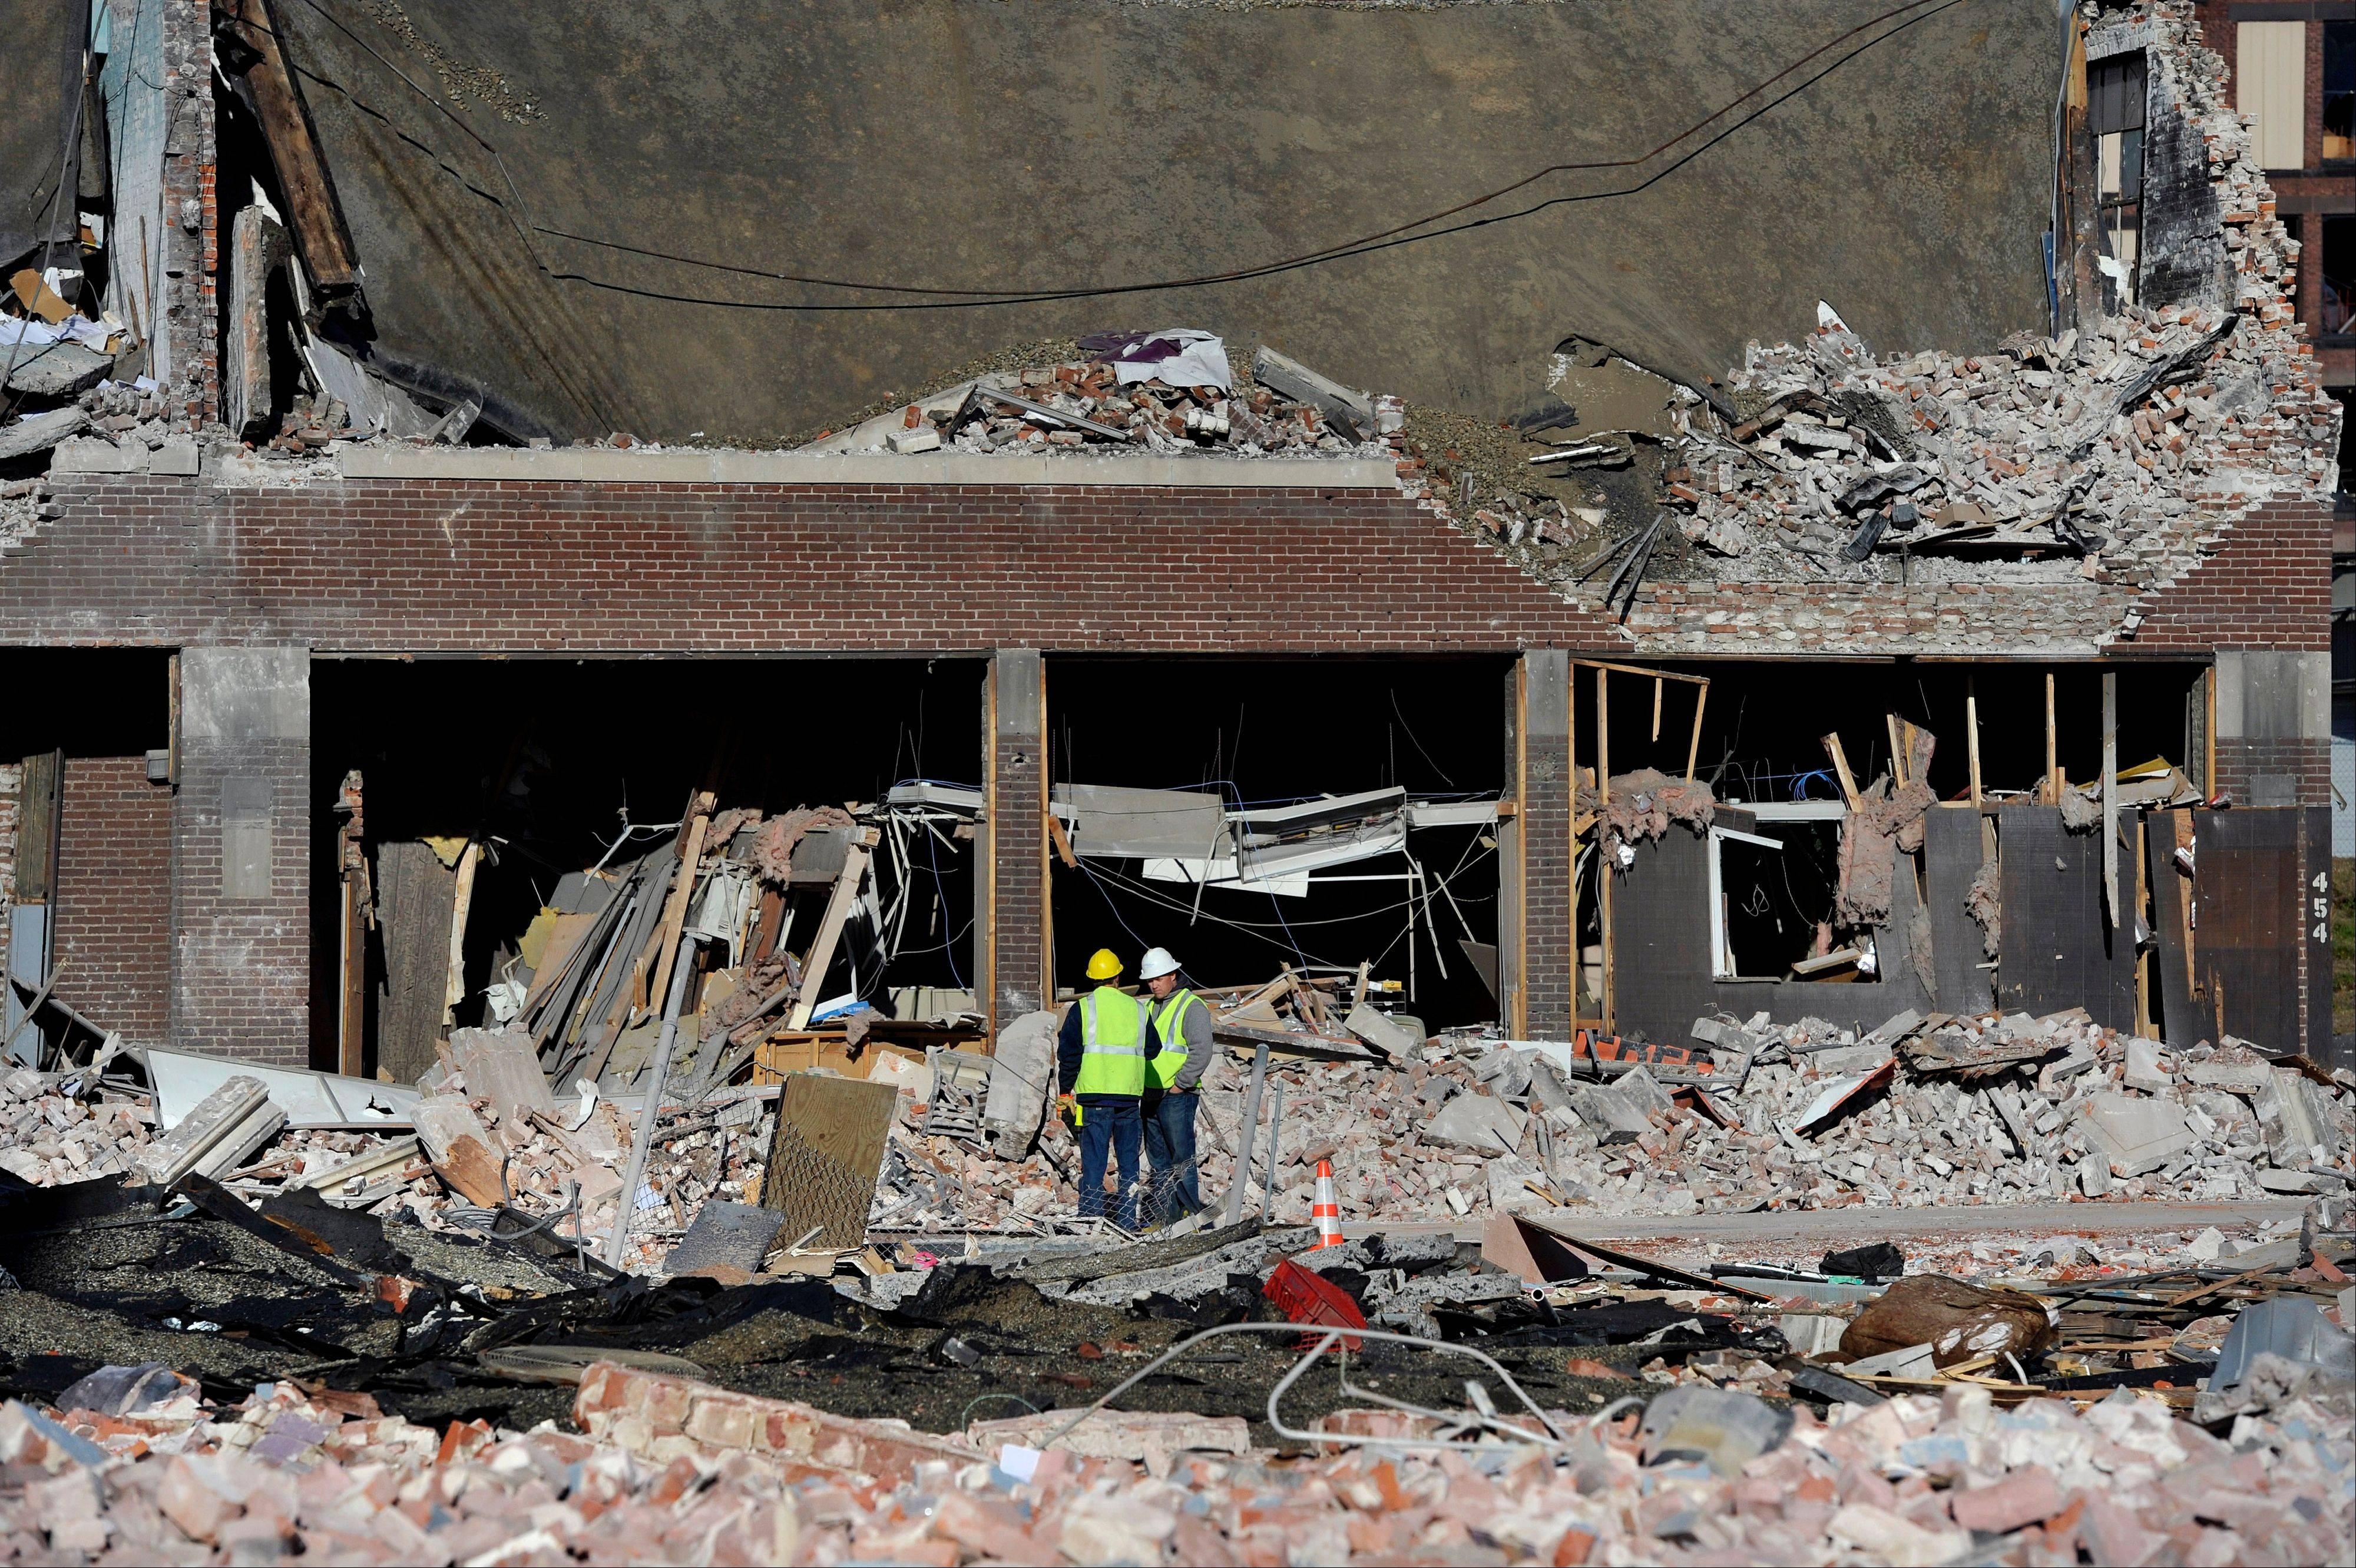 Inspectors stand in debris, Saturday, at the site of a gas explosion that leveled a strip club in Springfield, Mass.